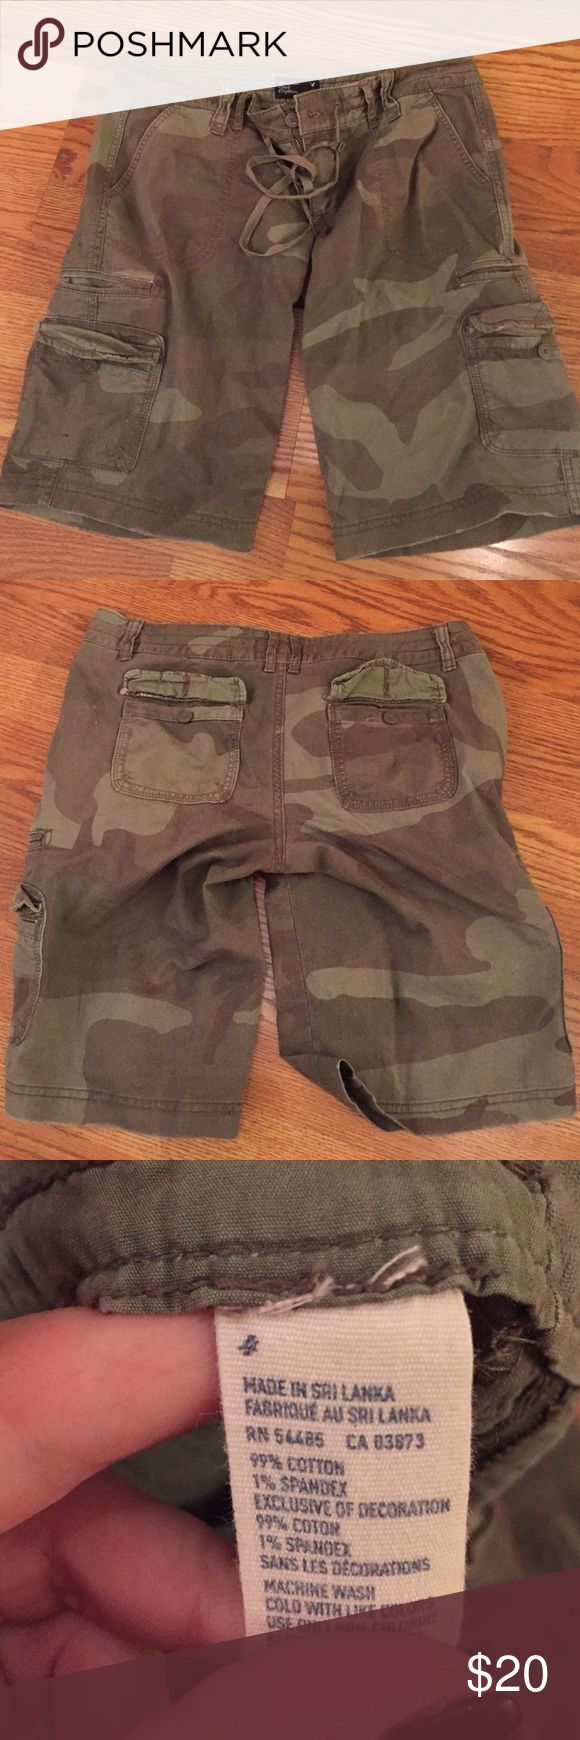 American Eagle knee length camo shorts American Eagle brand camouflage shorts. Knee length. Green. Size 4. American Eagle Outfitters Shorts Cargos